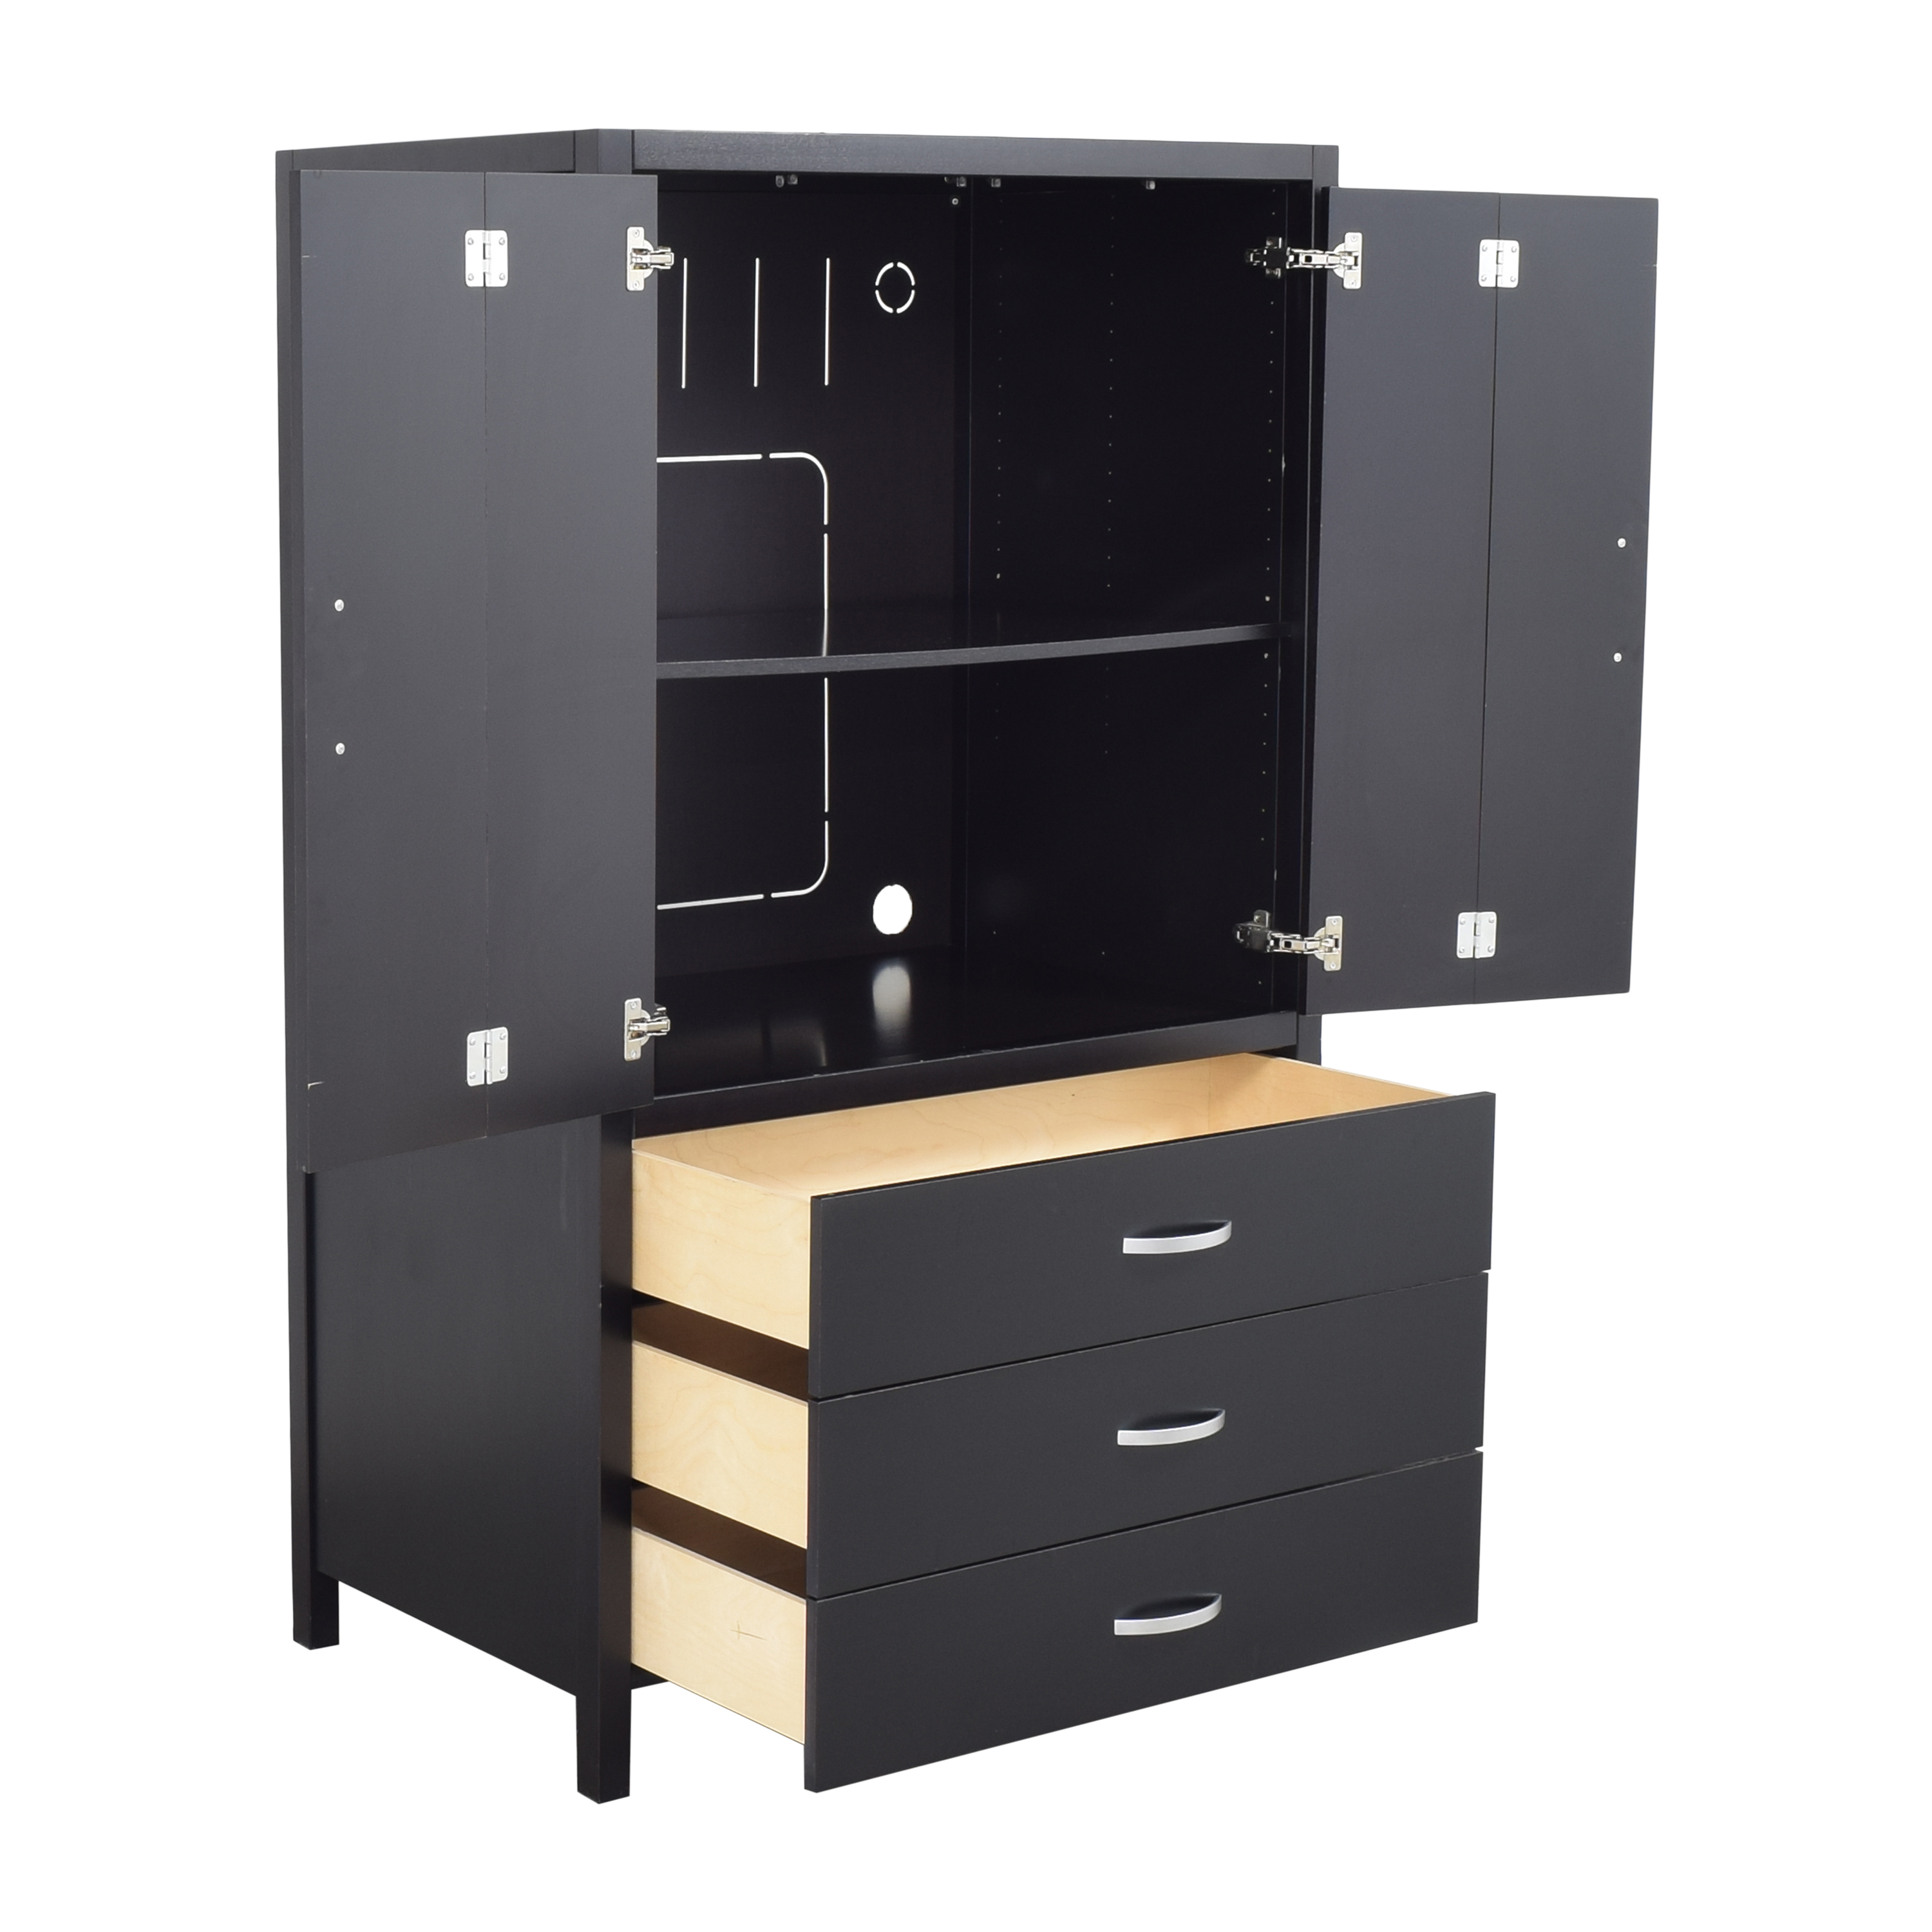 Solid & Basic Solid & Basic Two Door Wardrobe Wardrobes & Armoires